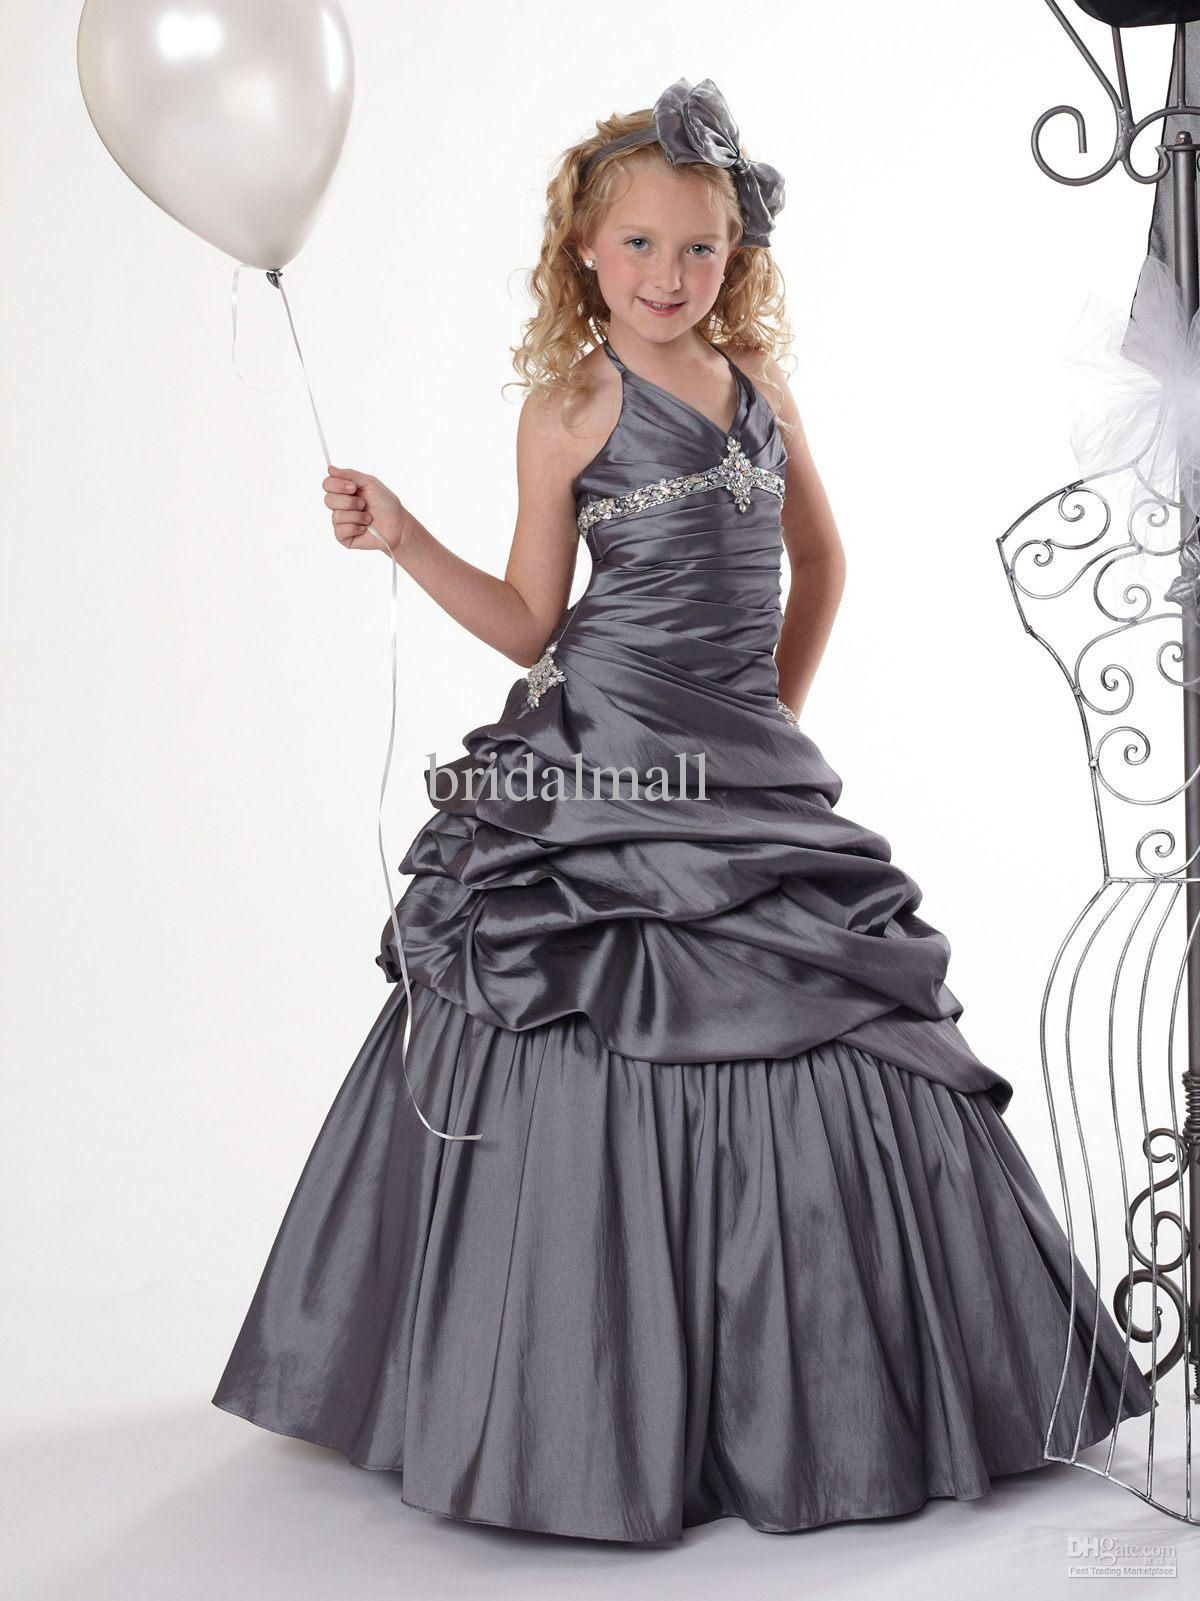 free shipping girlus princess gowns free frozen gift crystal